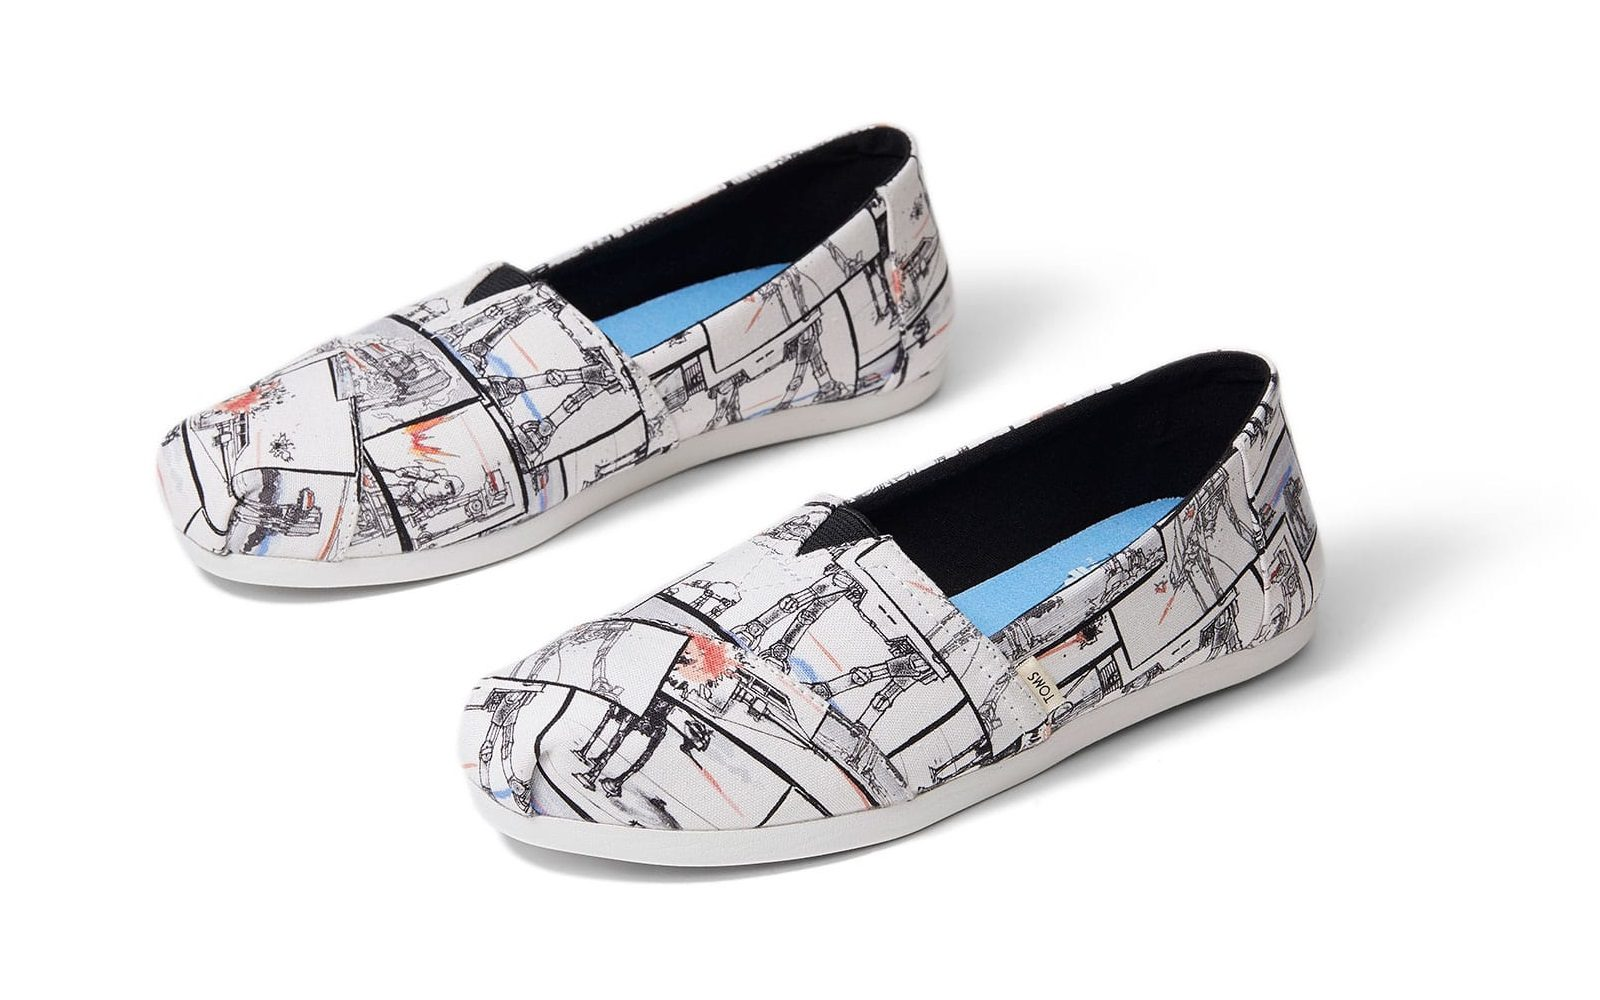 Toms x Star Wars Summer Footwear Collection 2019